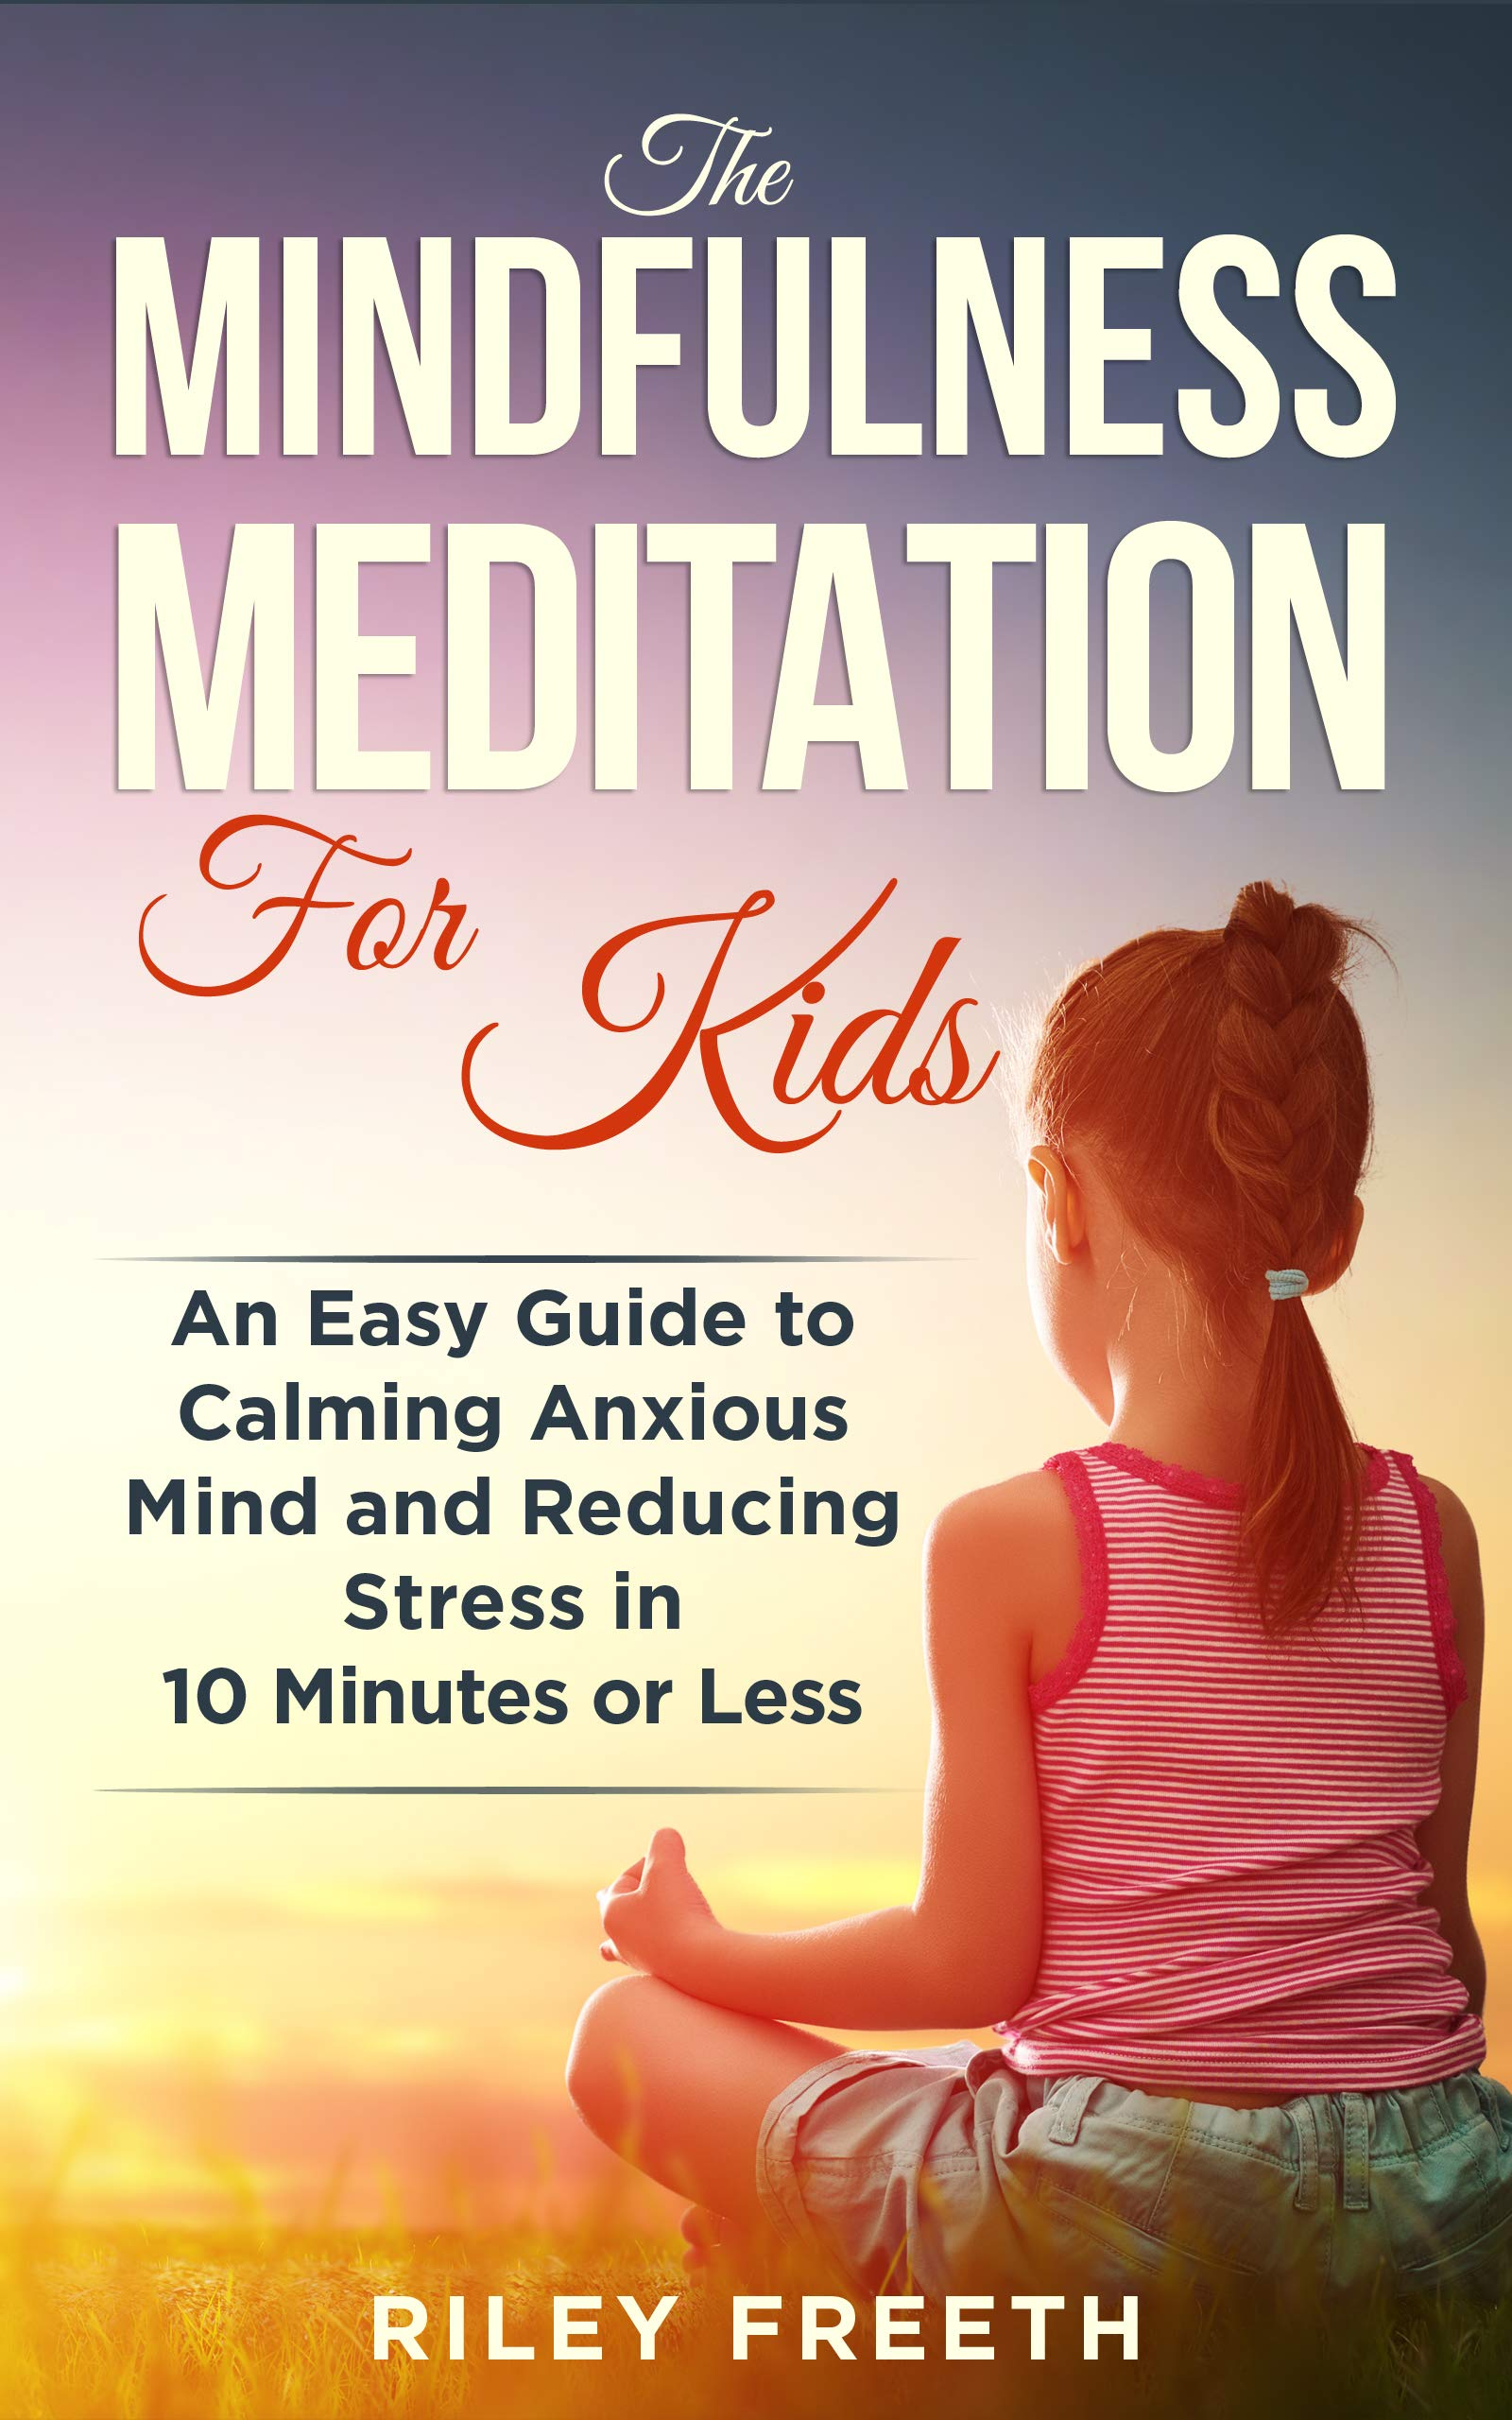 The Mindfulness Meditation for Kids: An Easy Guide to Calming Anxious Mind and Reducing Stress in 10 Minutes or Less